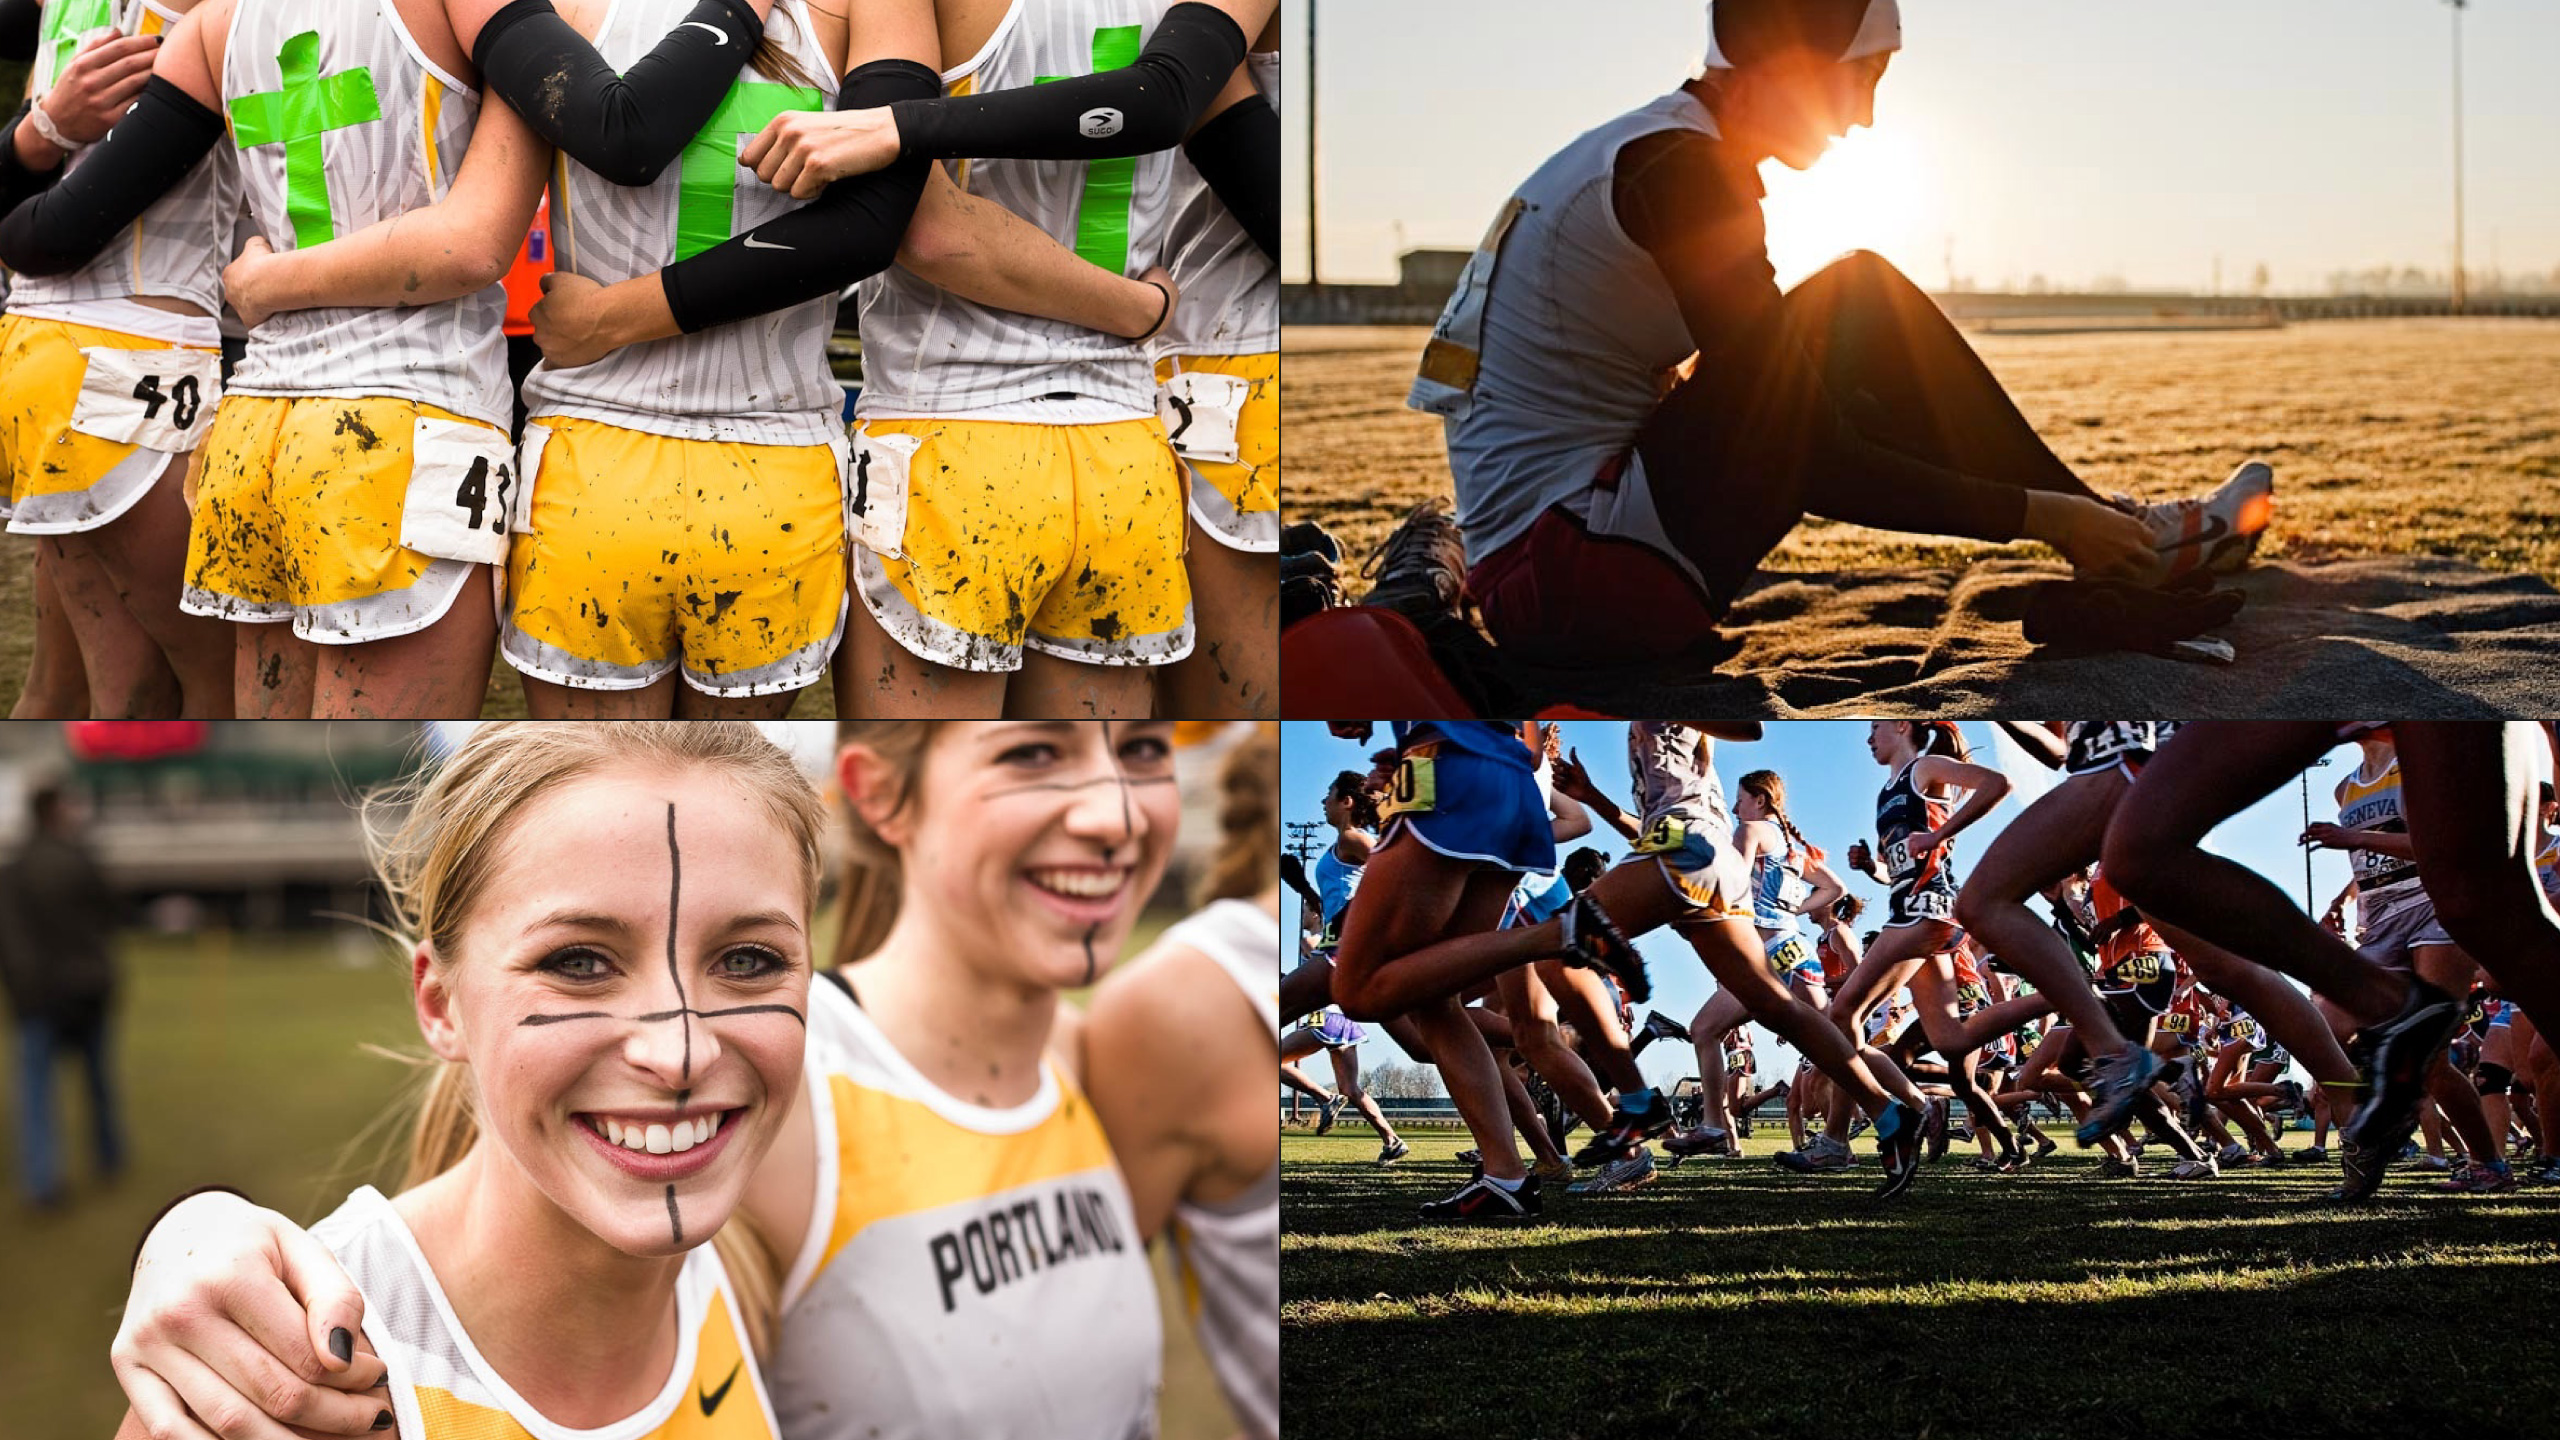 Cross country images